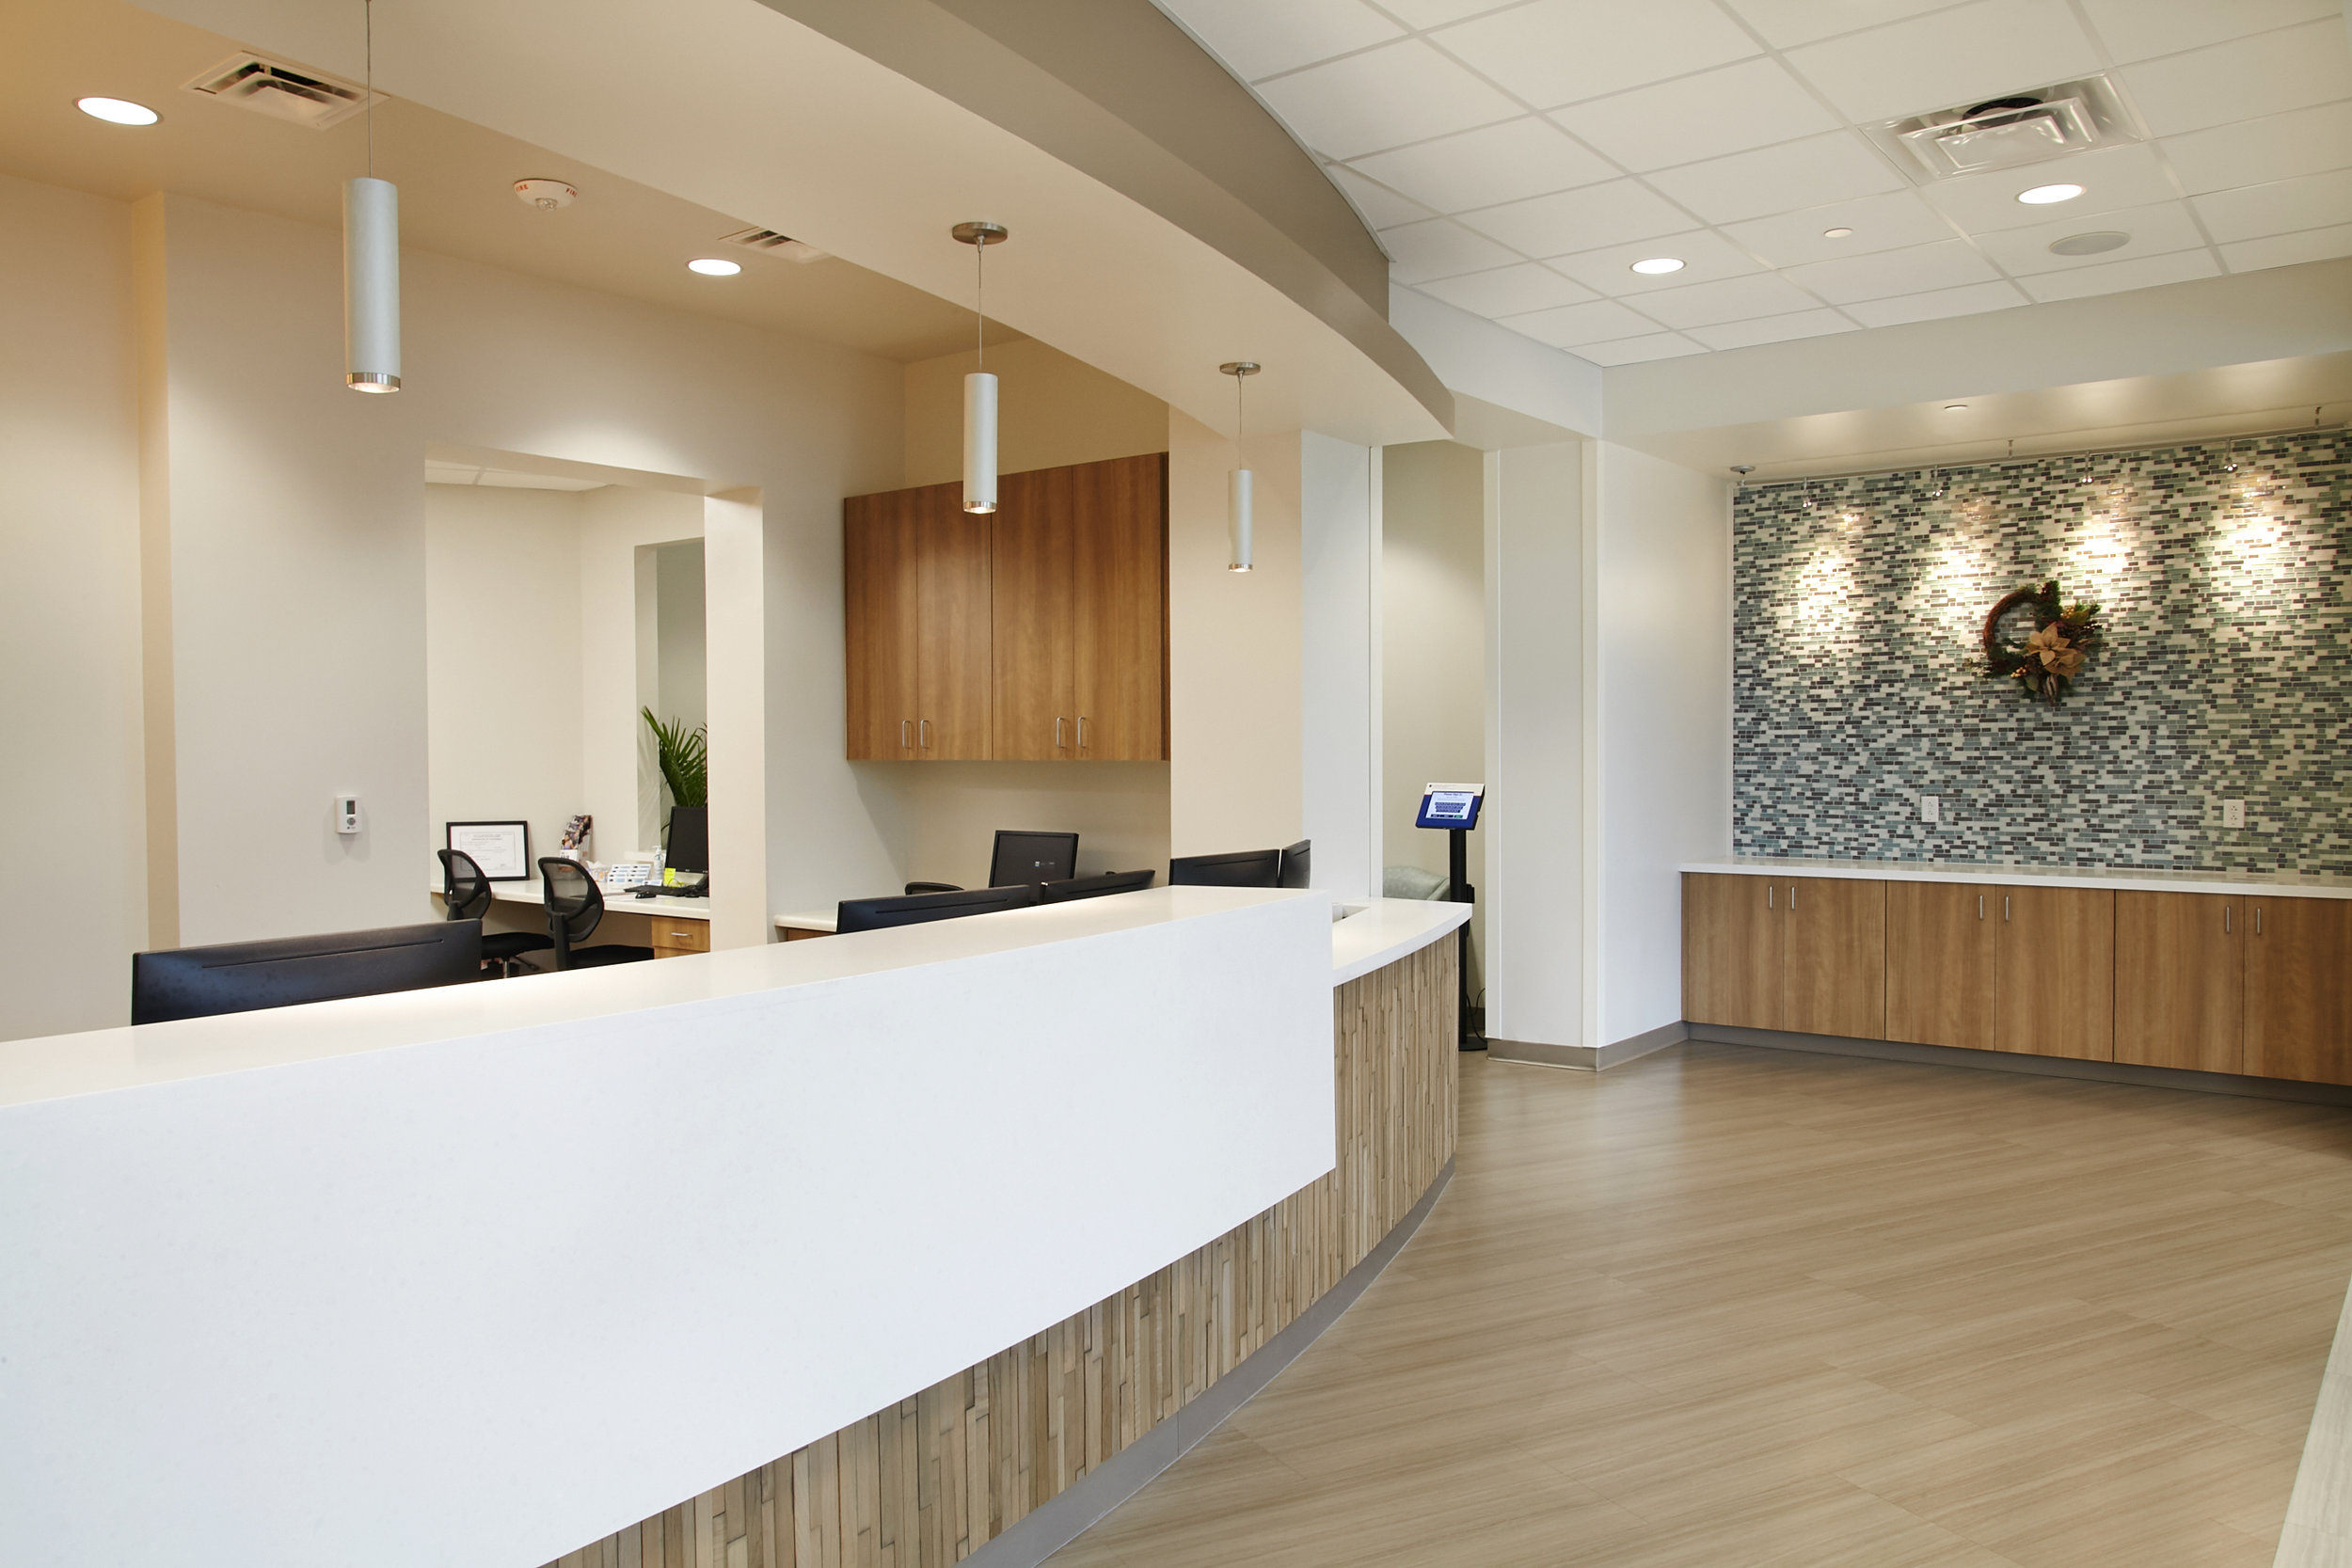 Hill Country Family Medicine_MG_1161.jpg